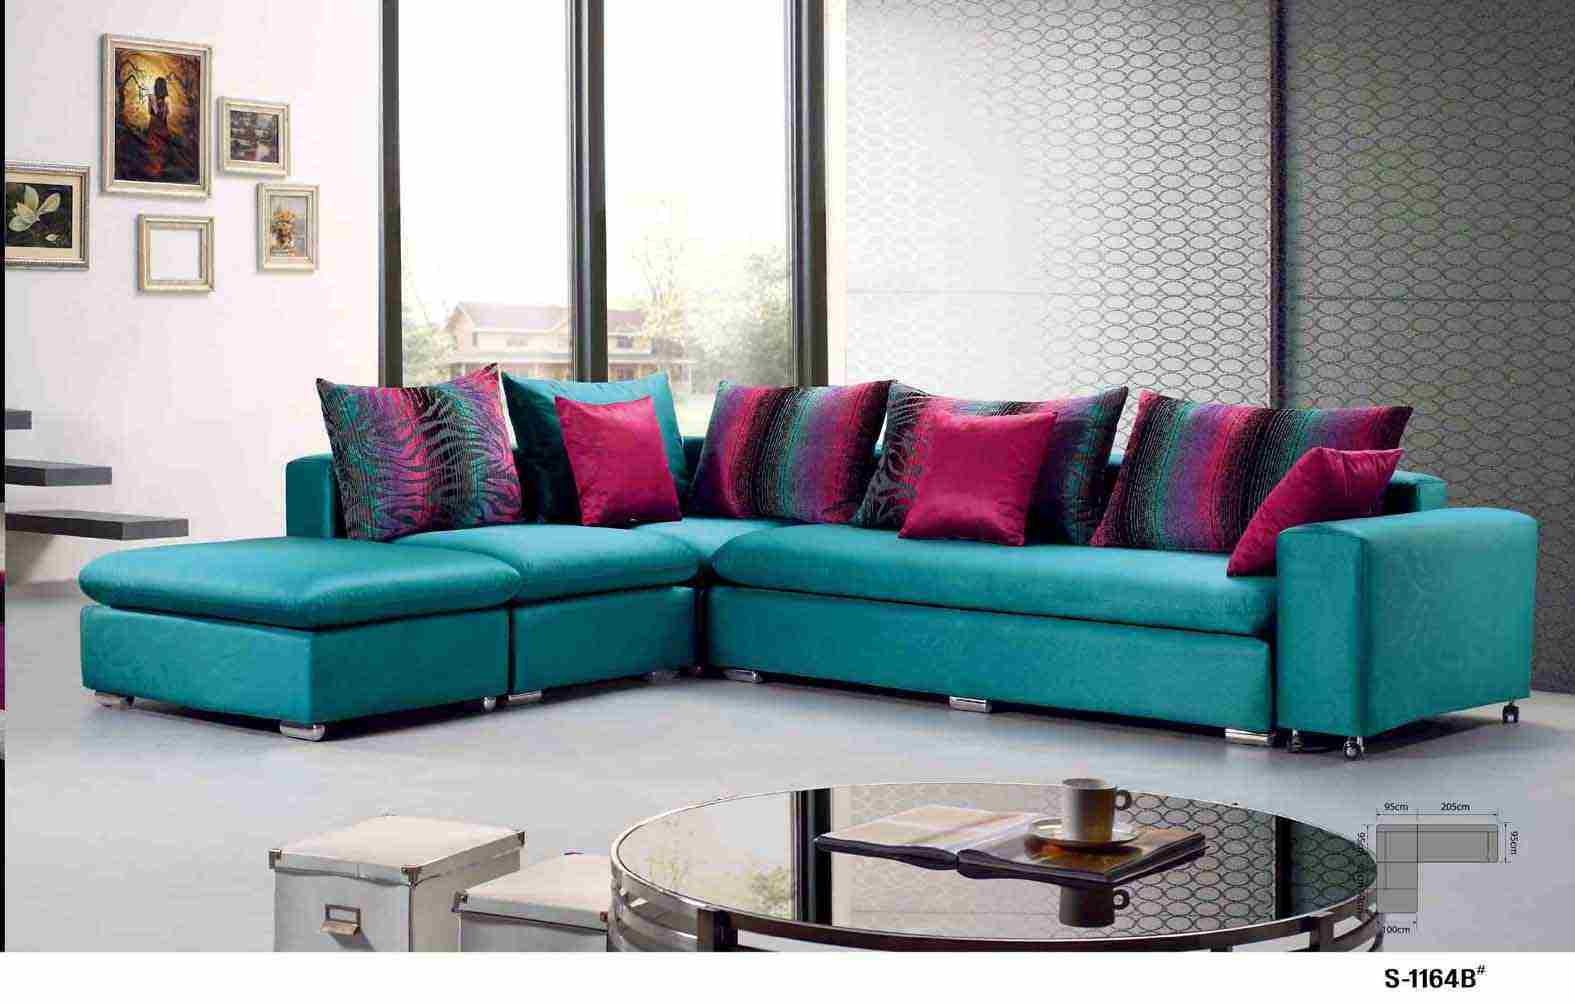 China colorful fabric sofa s 1164b china sofa fabric sofa for Colorful living room furniture